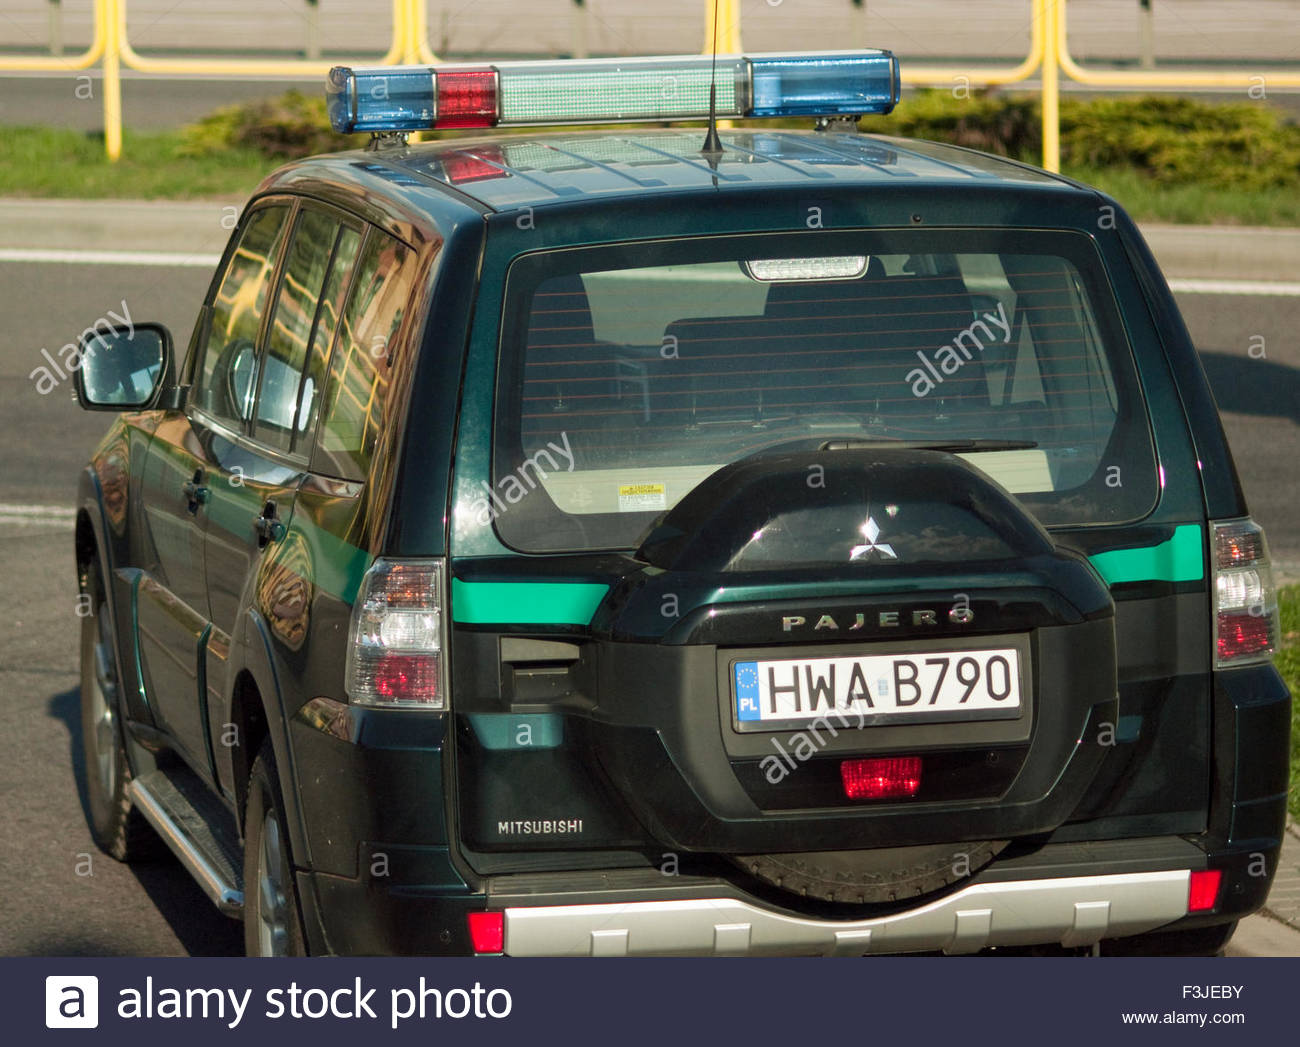 Customs And Immigration At Country Border - Poland Europe - Stock Image